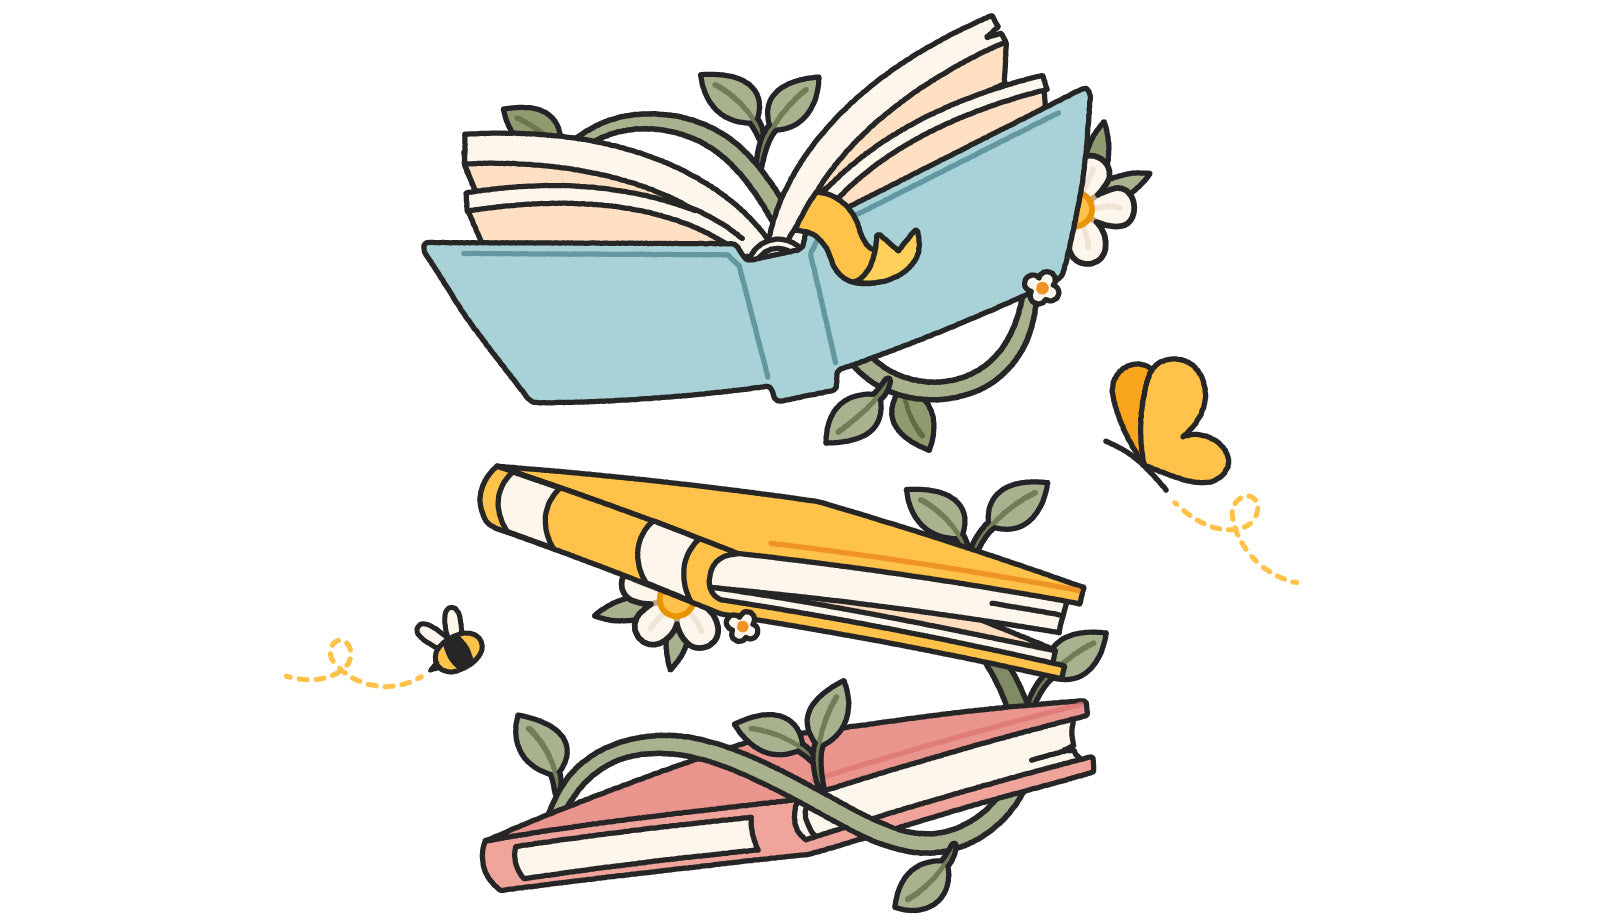 Illustration of three books gently suspended in air, with vines, flowers, butterflies and bees artfully drawn in